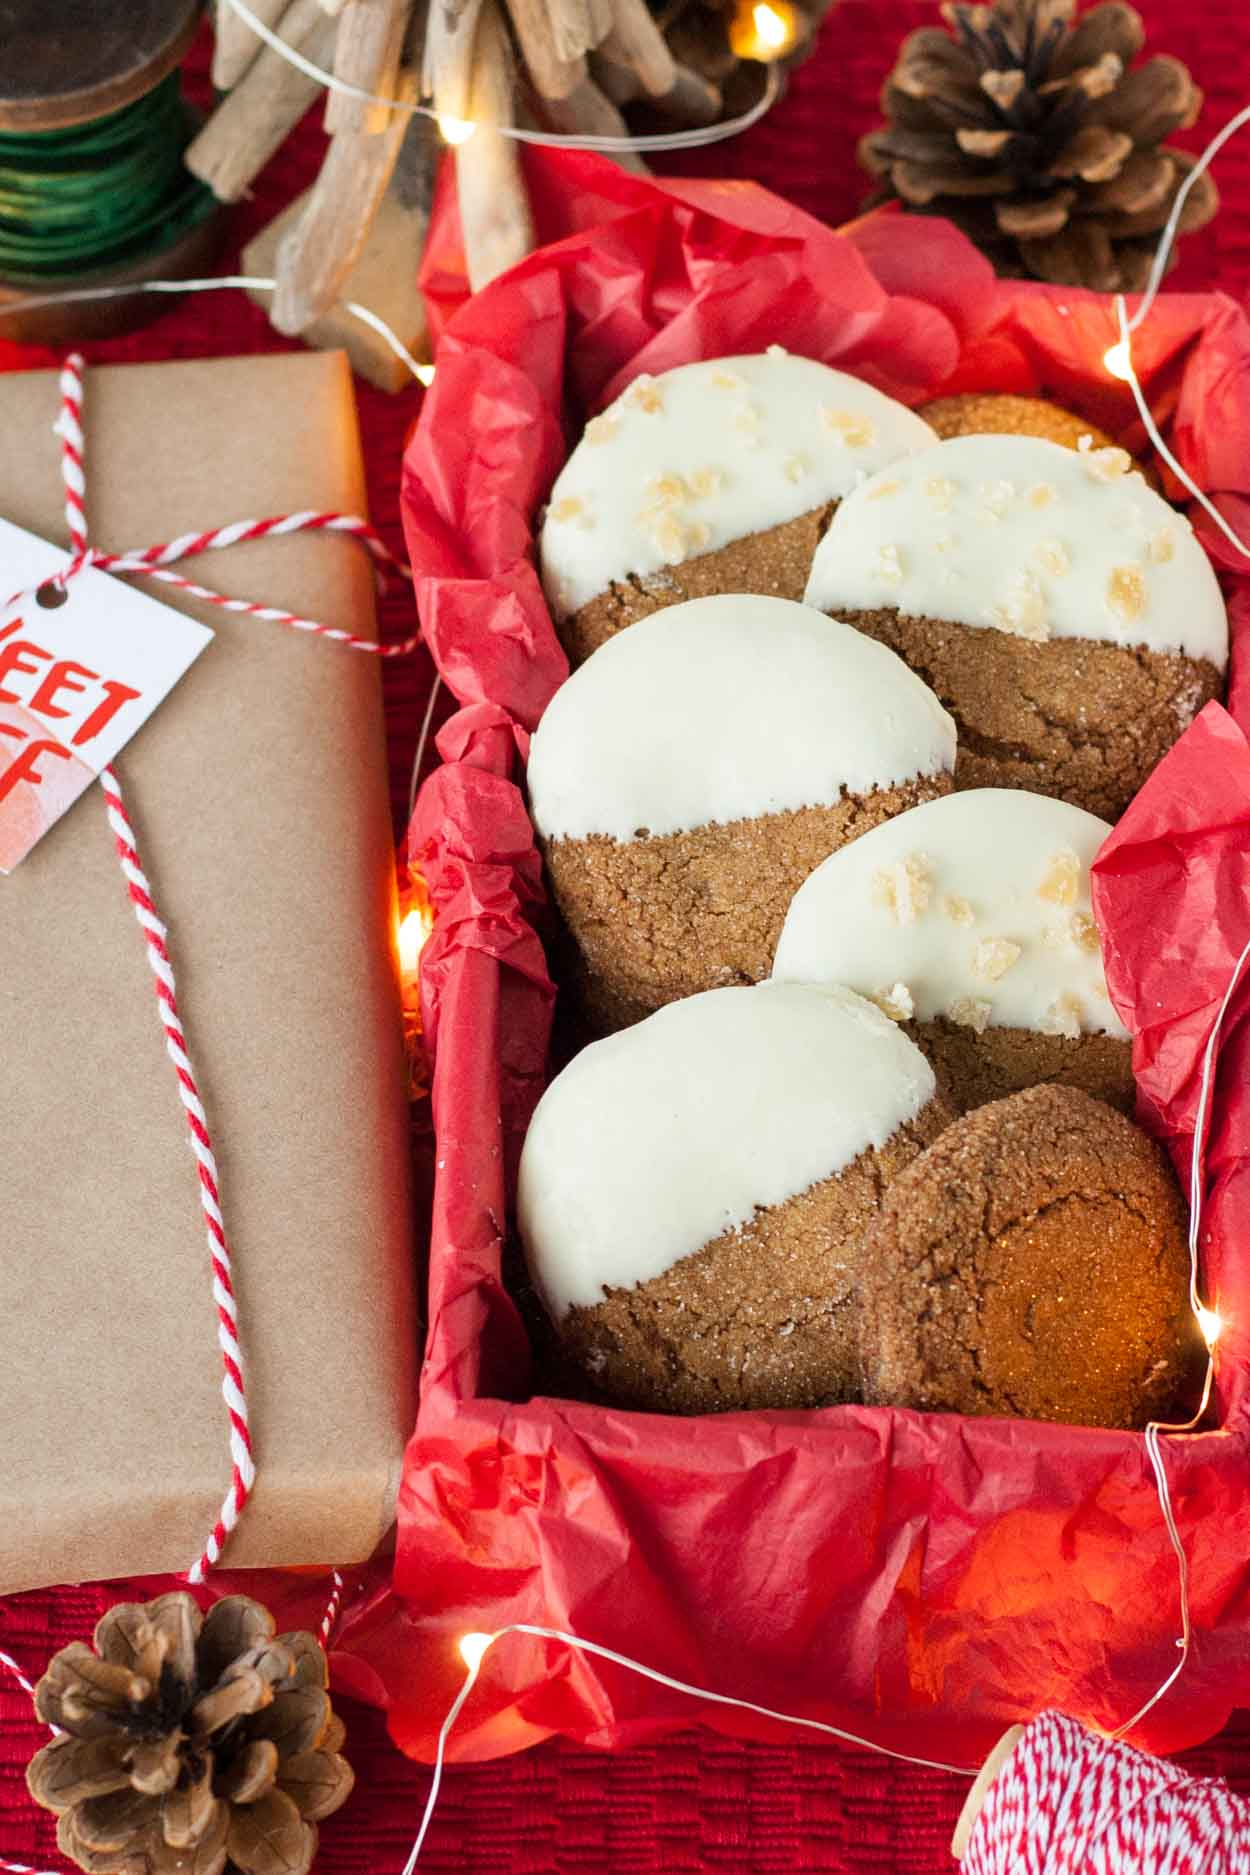 25 Last Minute Christmas Cookie Ideas. Snow Capped Gingersnap Cookies.